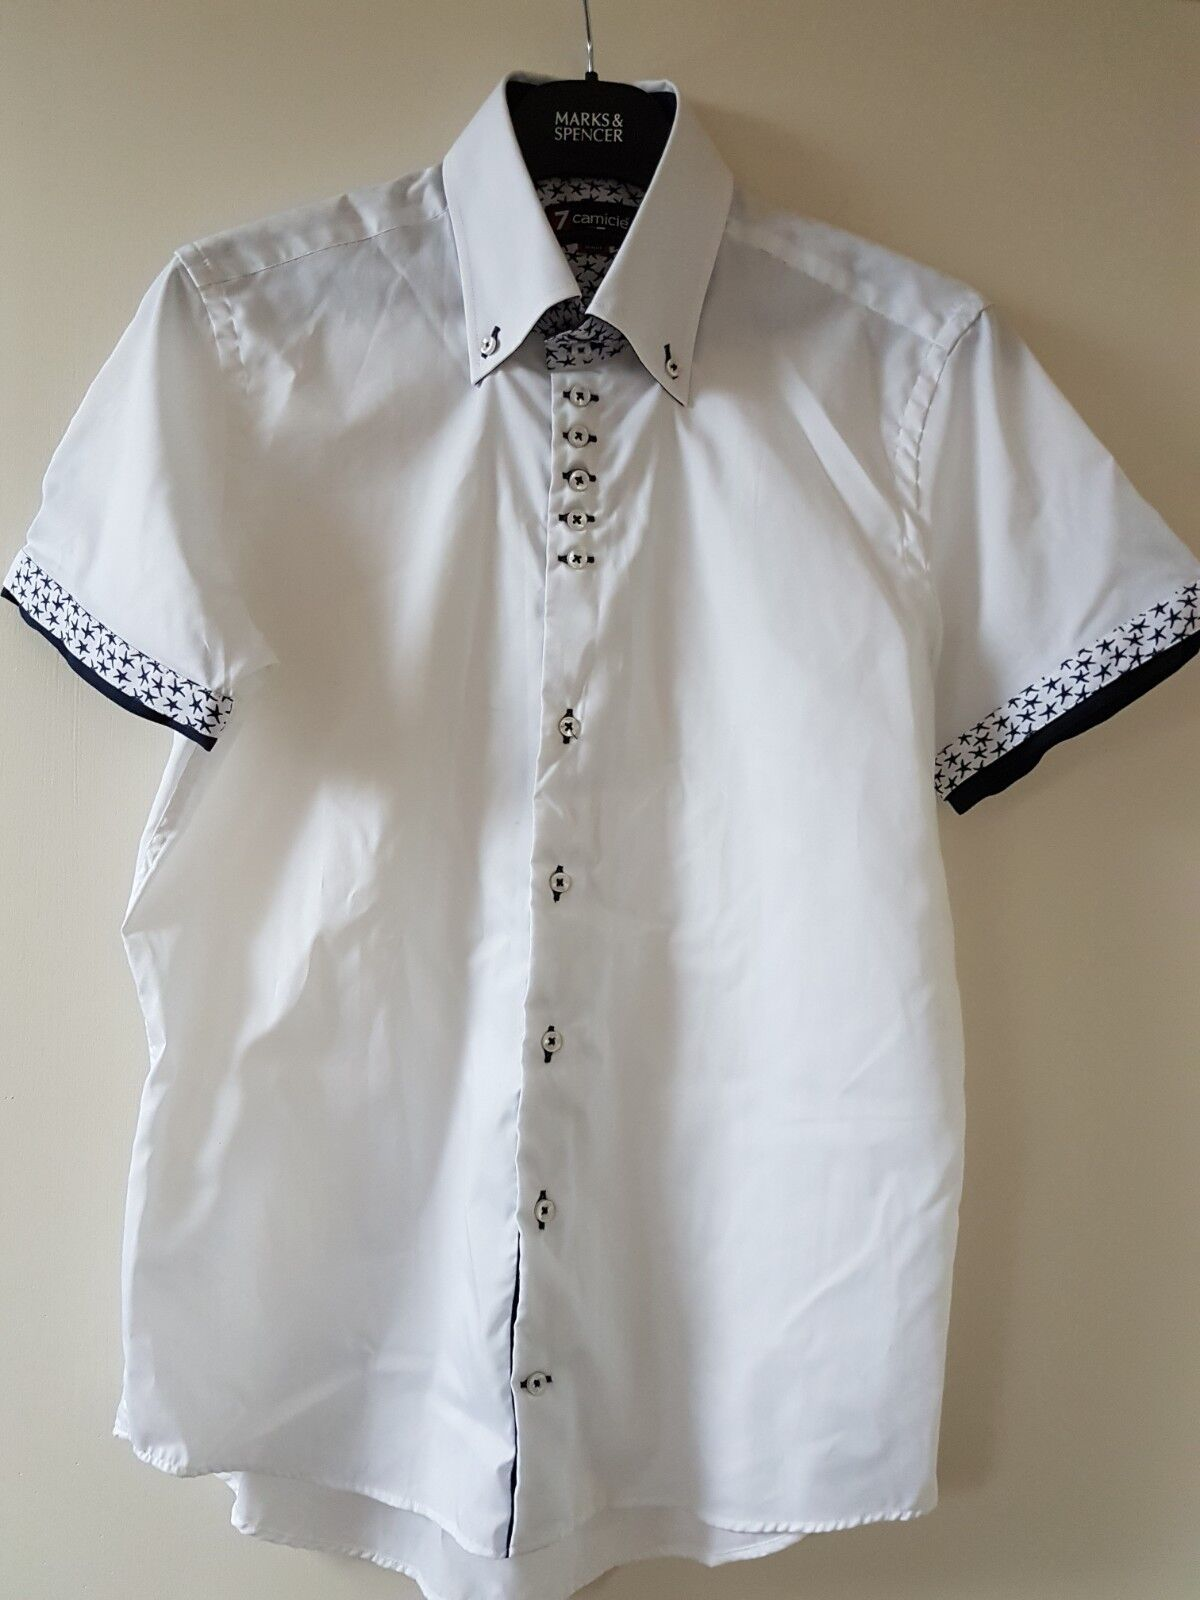 BNWOT 7 CAMICIE DESIGNER MENS WHITE SHORT SLEEVE SHIRT